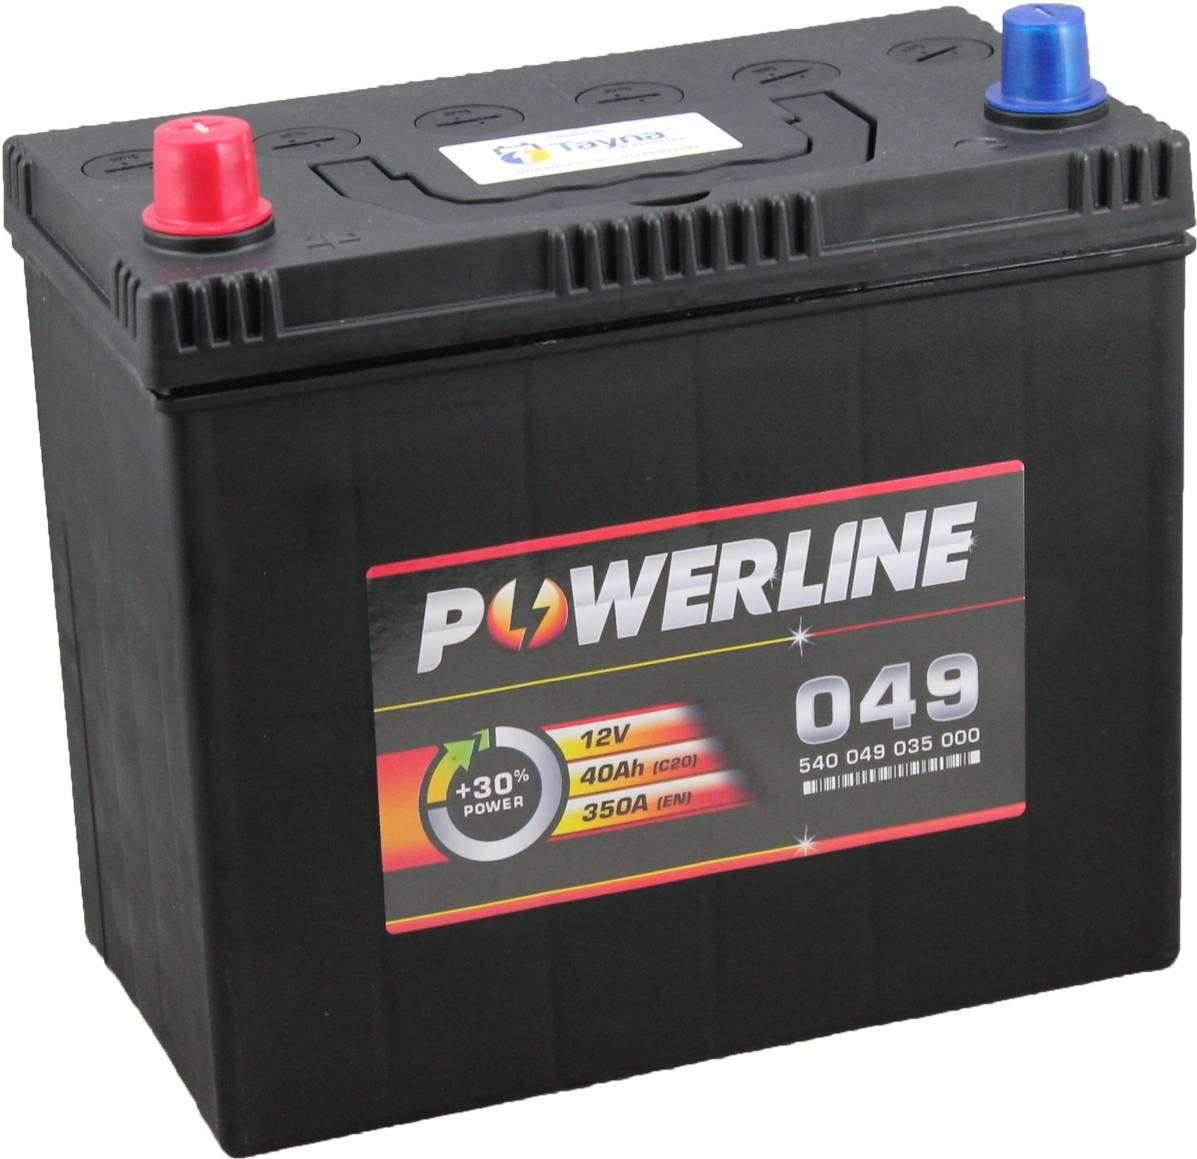 049 Powerline Car Battery 12V 057